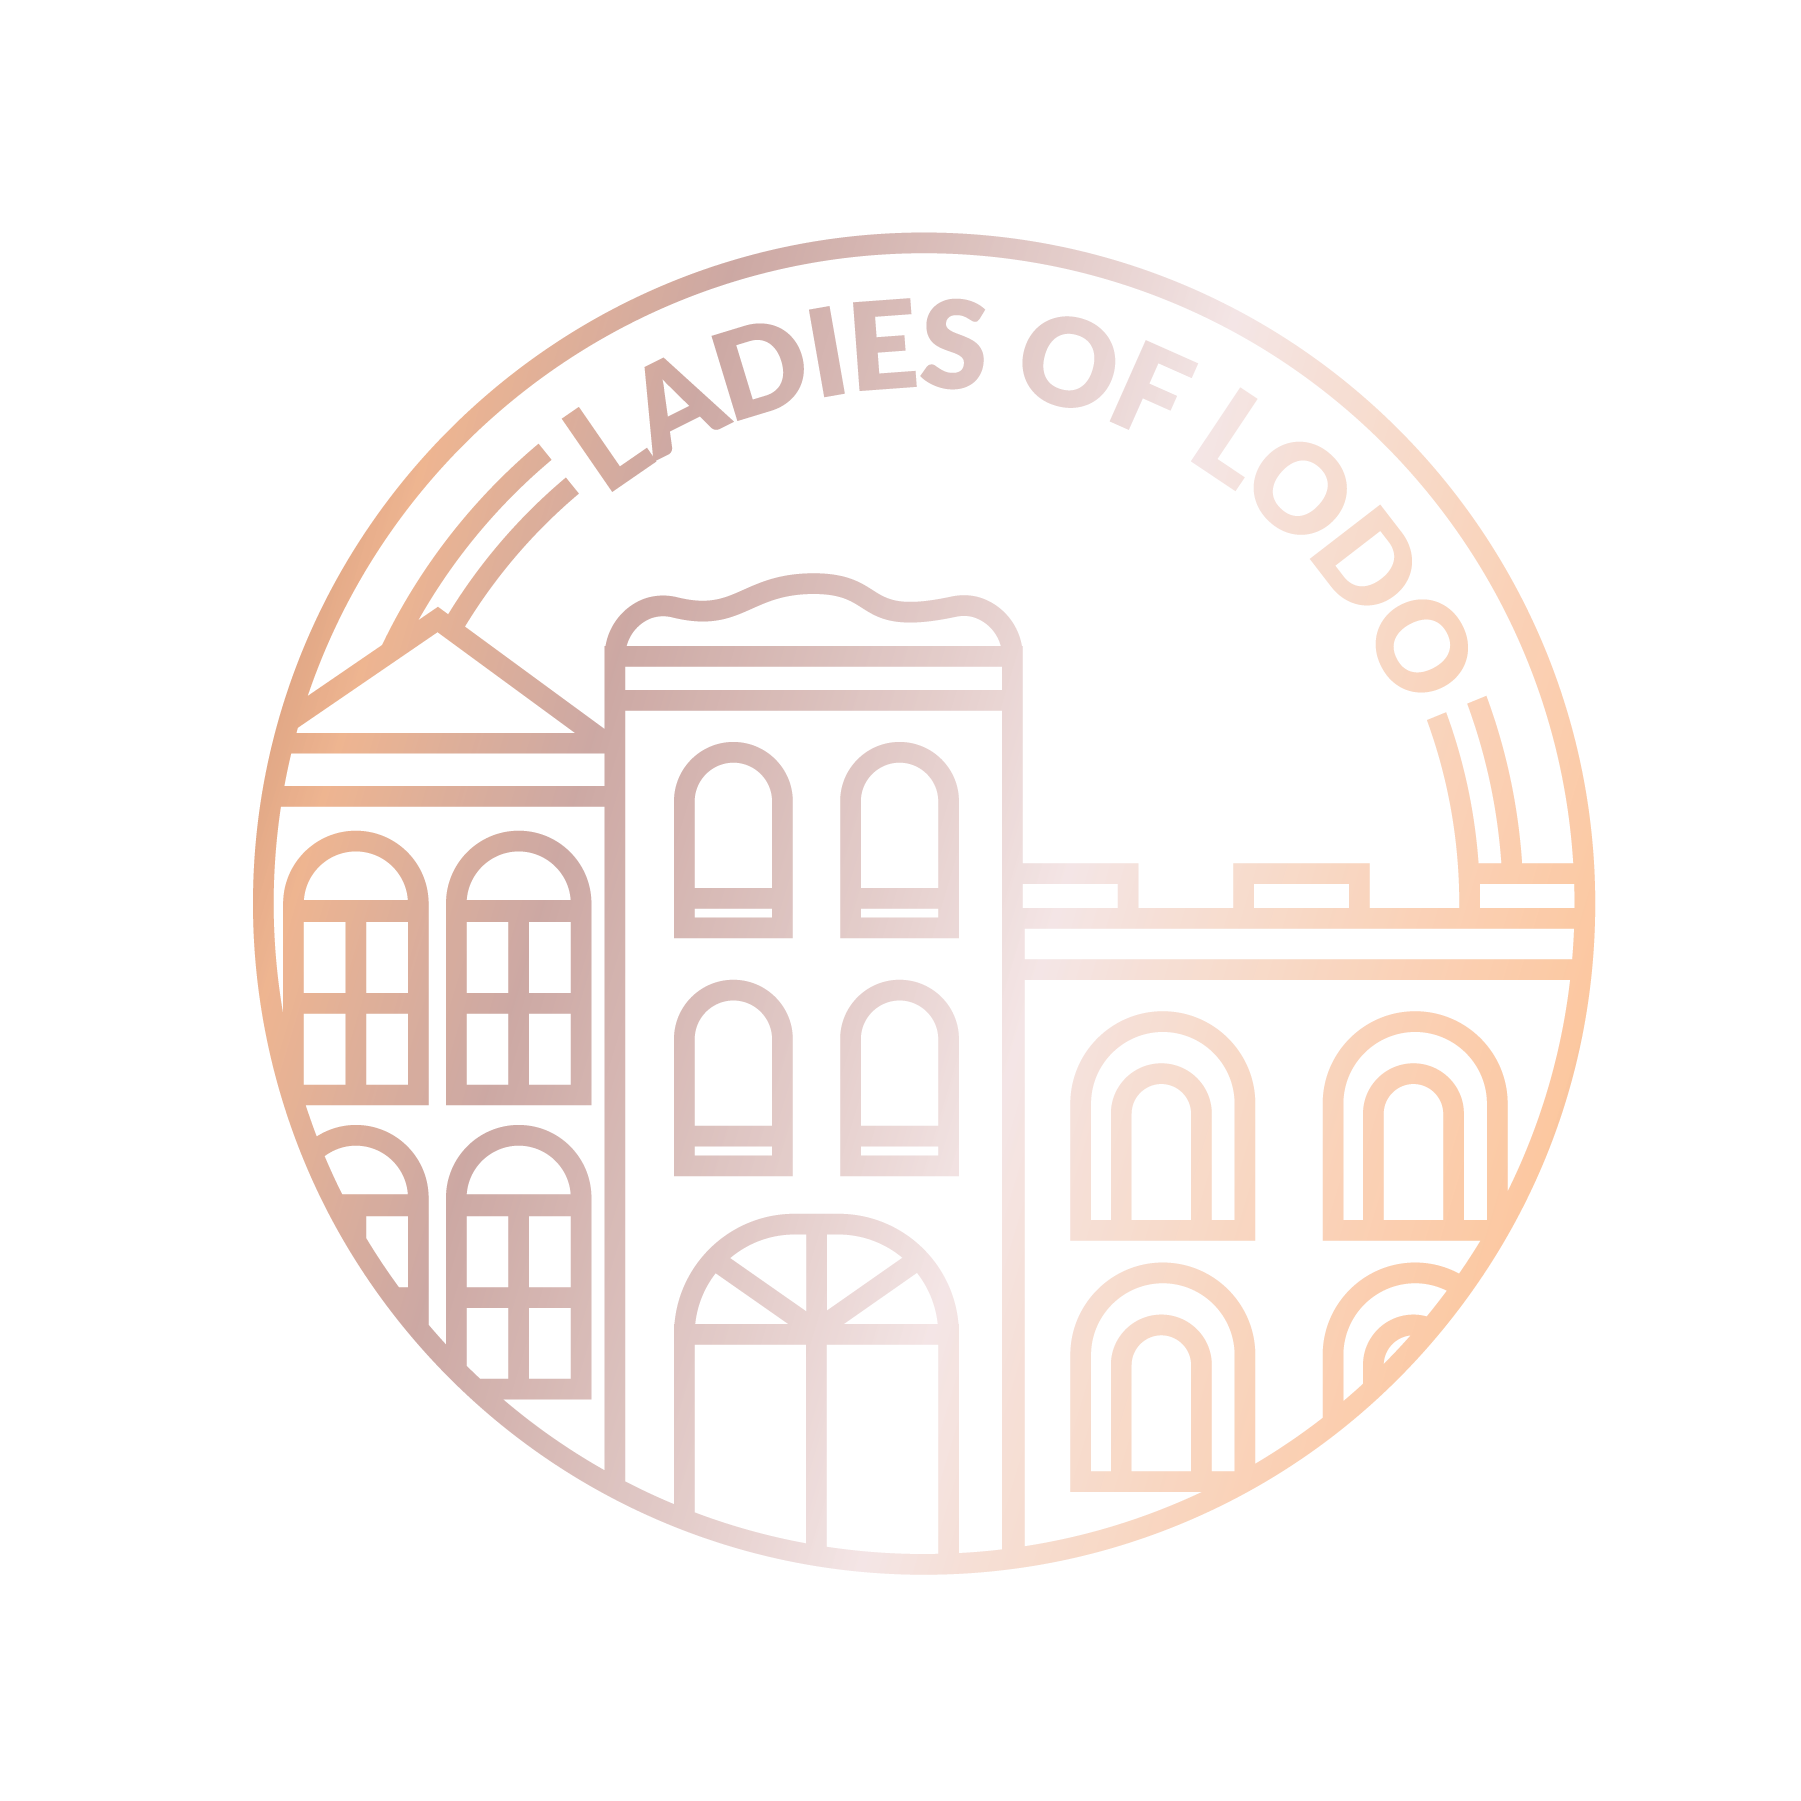 LadiesofLodo-Final-03.png